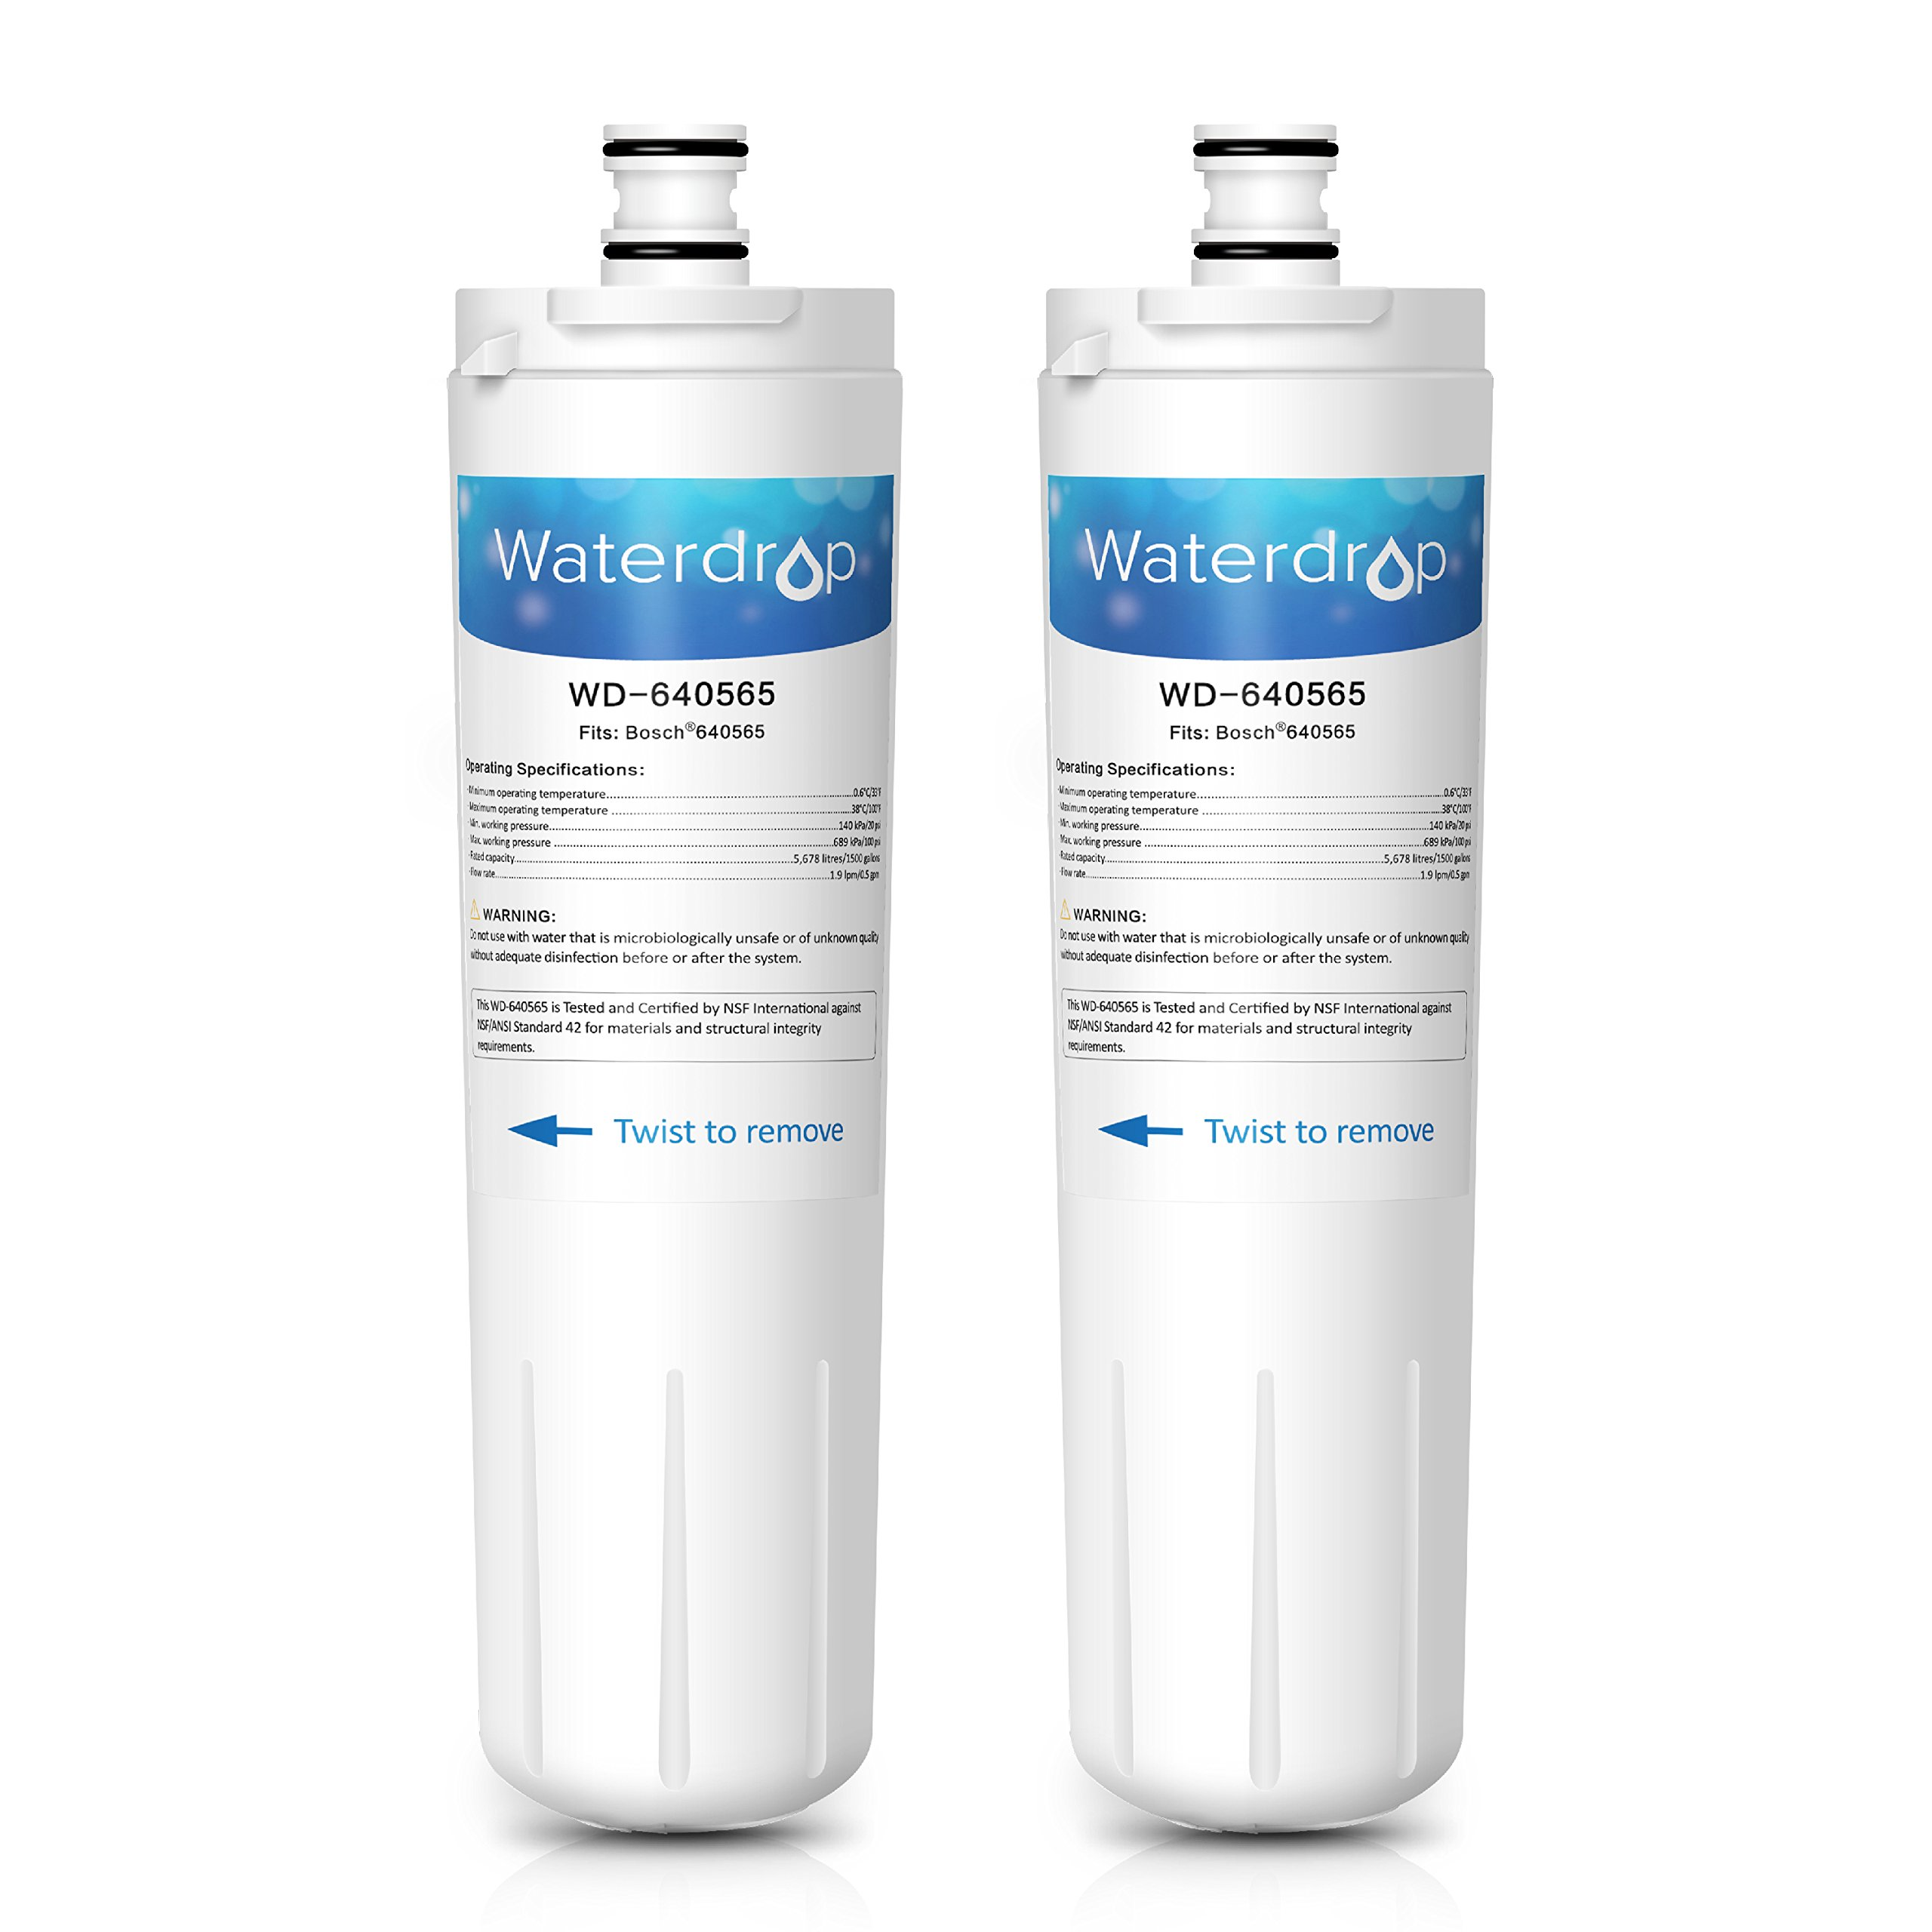 Waterdrop 640565 Replacement Refrigerator Water Filter, Compatible with Bosch 640565, EVOLFLTR10 AP3961137, Whirlpool WHKF-R-Plus (2 Pack)